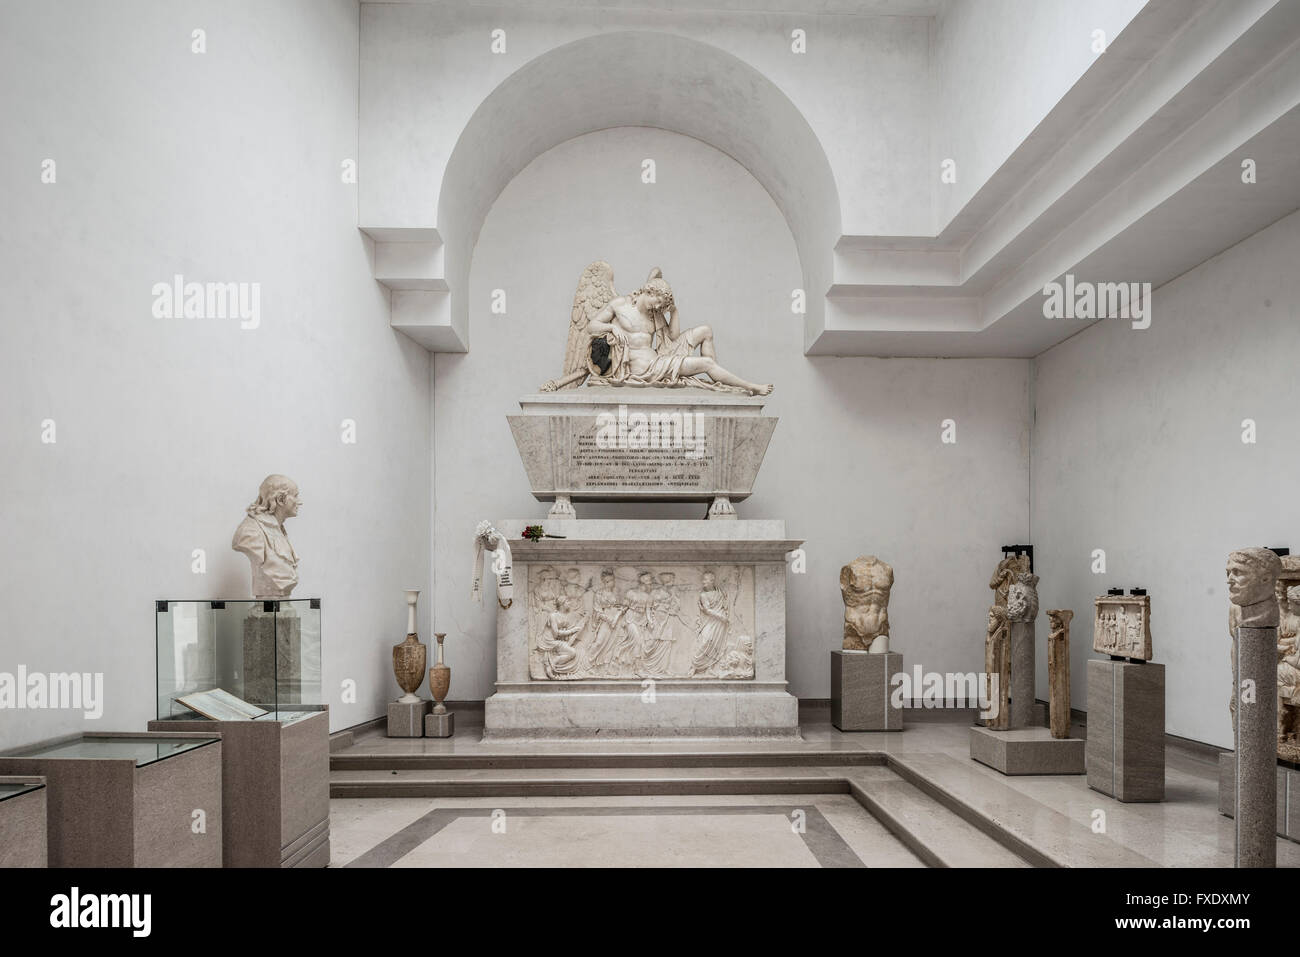 Cenotaph for Johann Joachim Winckelmann, by Antonio Bosa, 1832 Temple in the Lapidario Tergestino, Museum of Roman - Stock Image